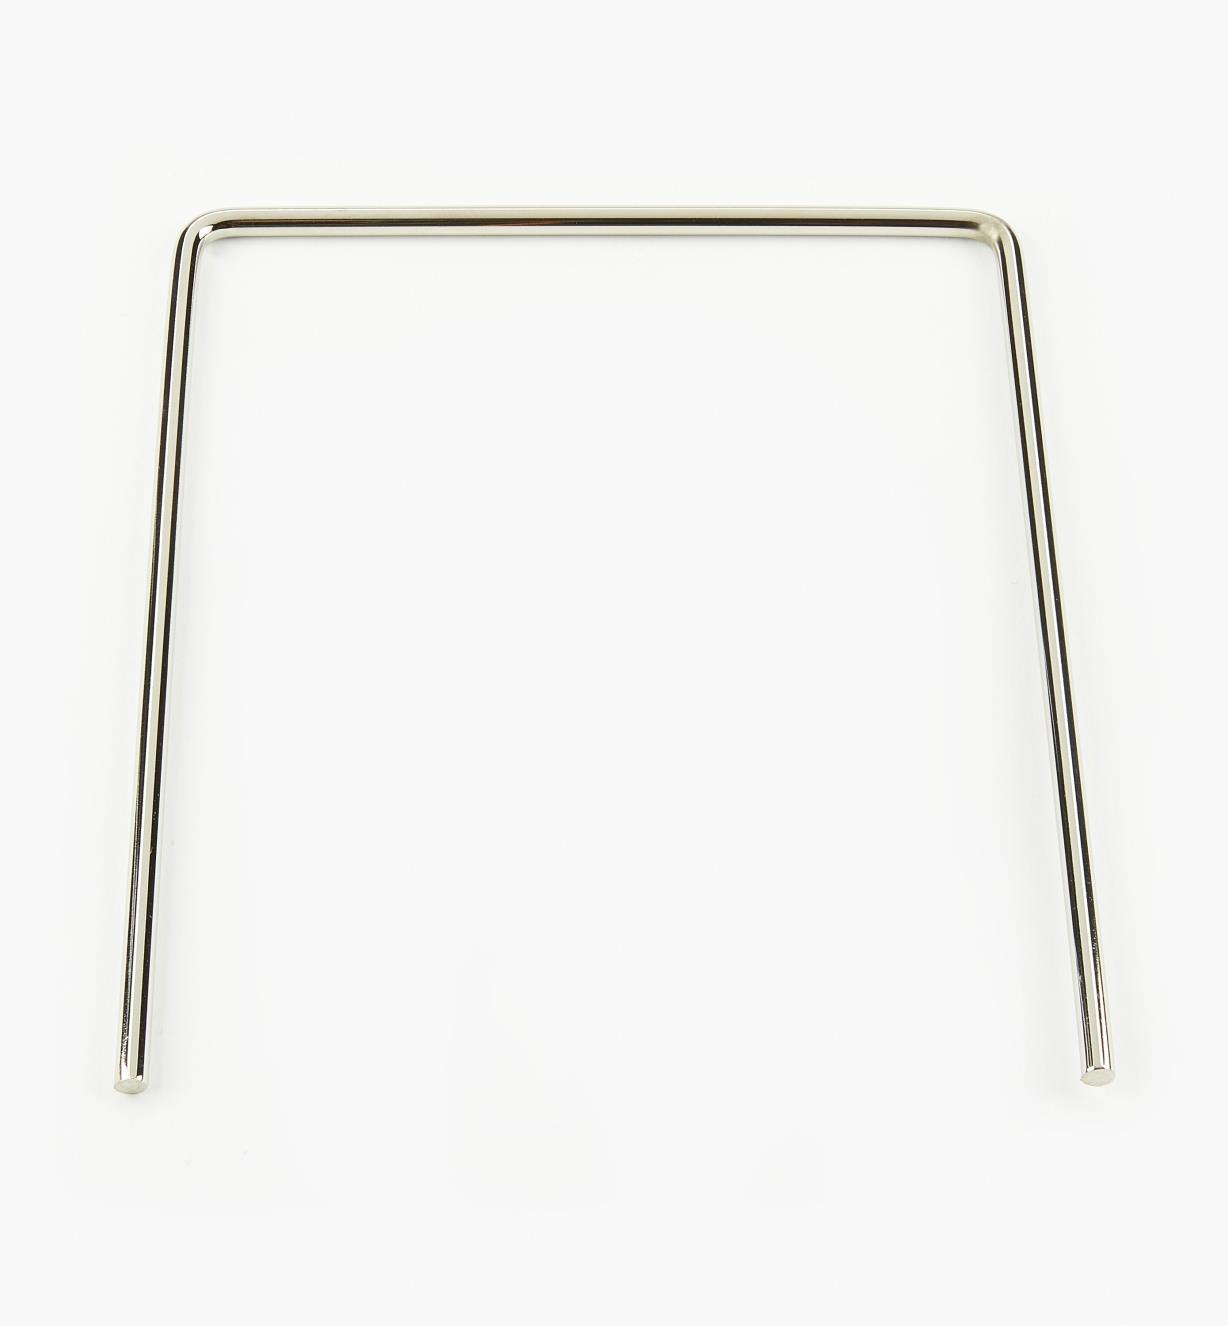 00U1701 - Chrome Plated Square Divider